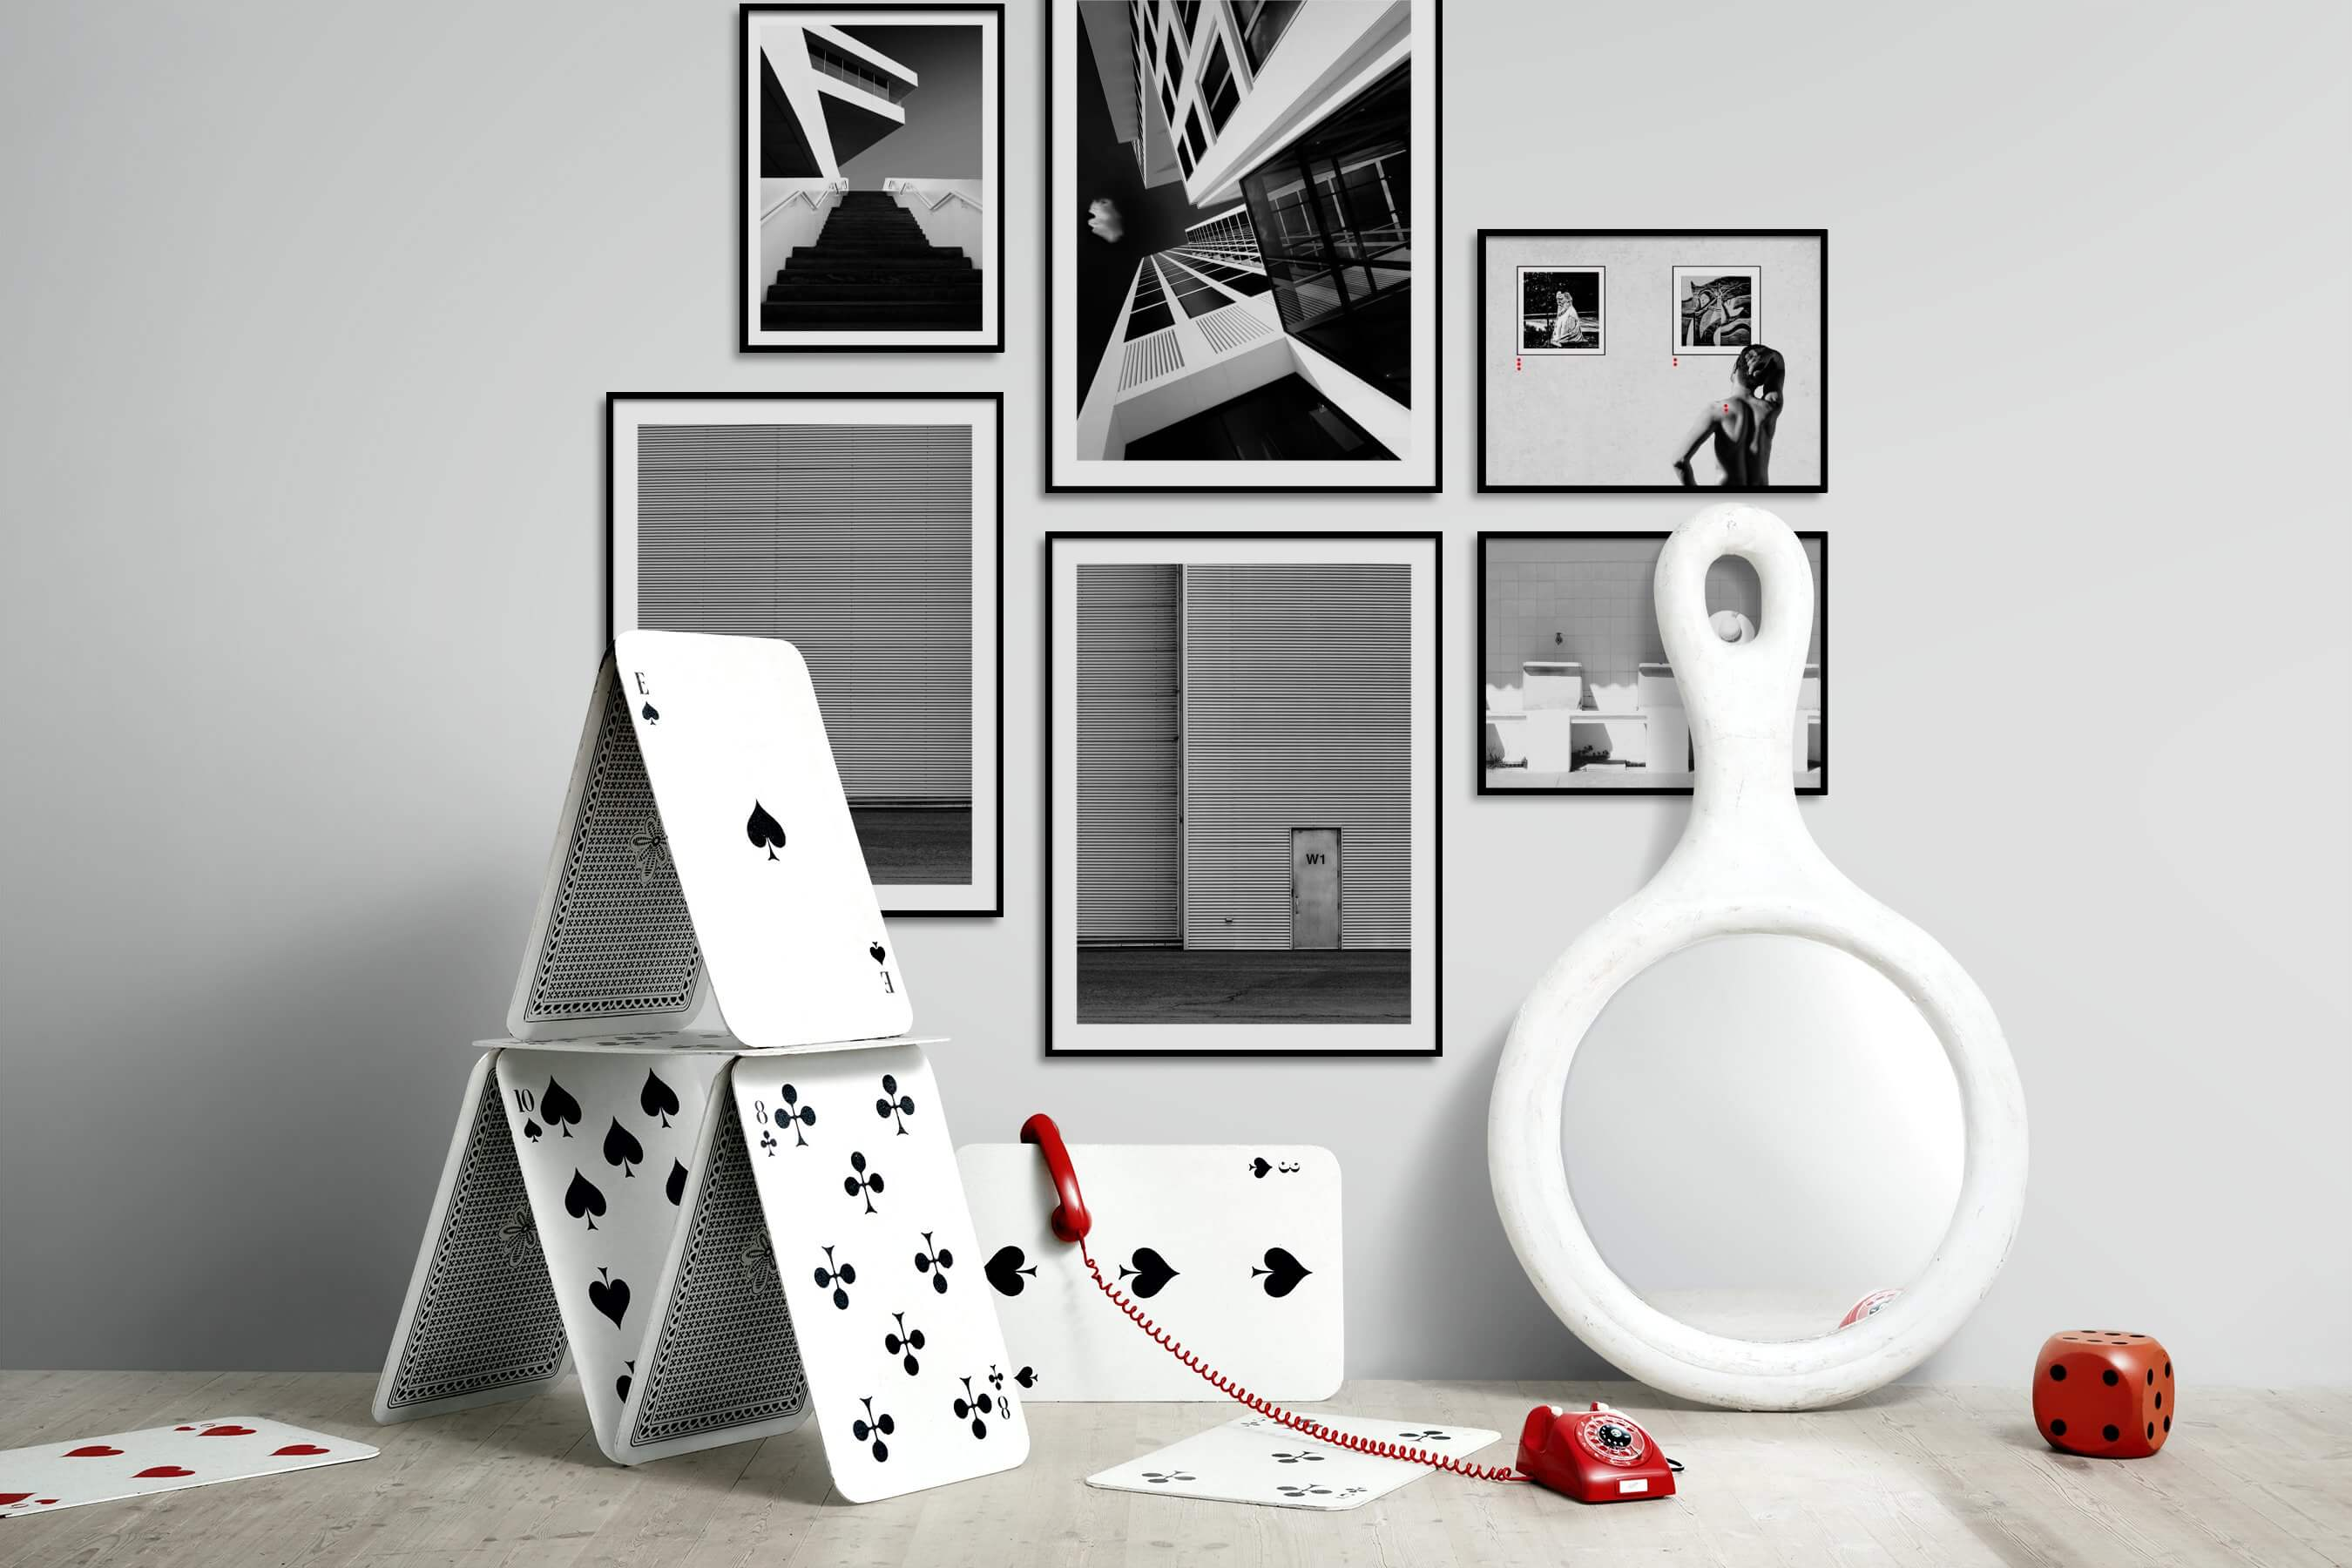 Gallery wall idea with six framed pictures arranged on a wall depicting Black & White, For the Moderate, City Life, For the Minimalist, and Artsy